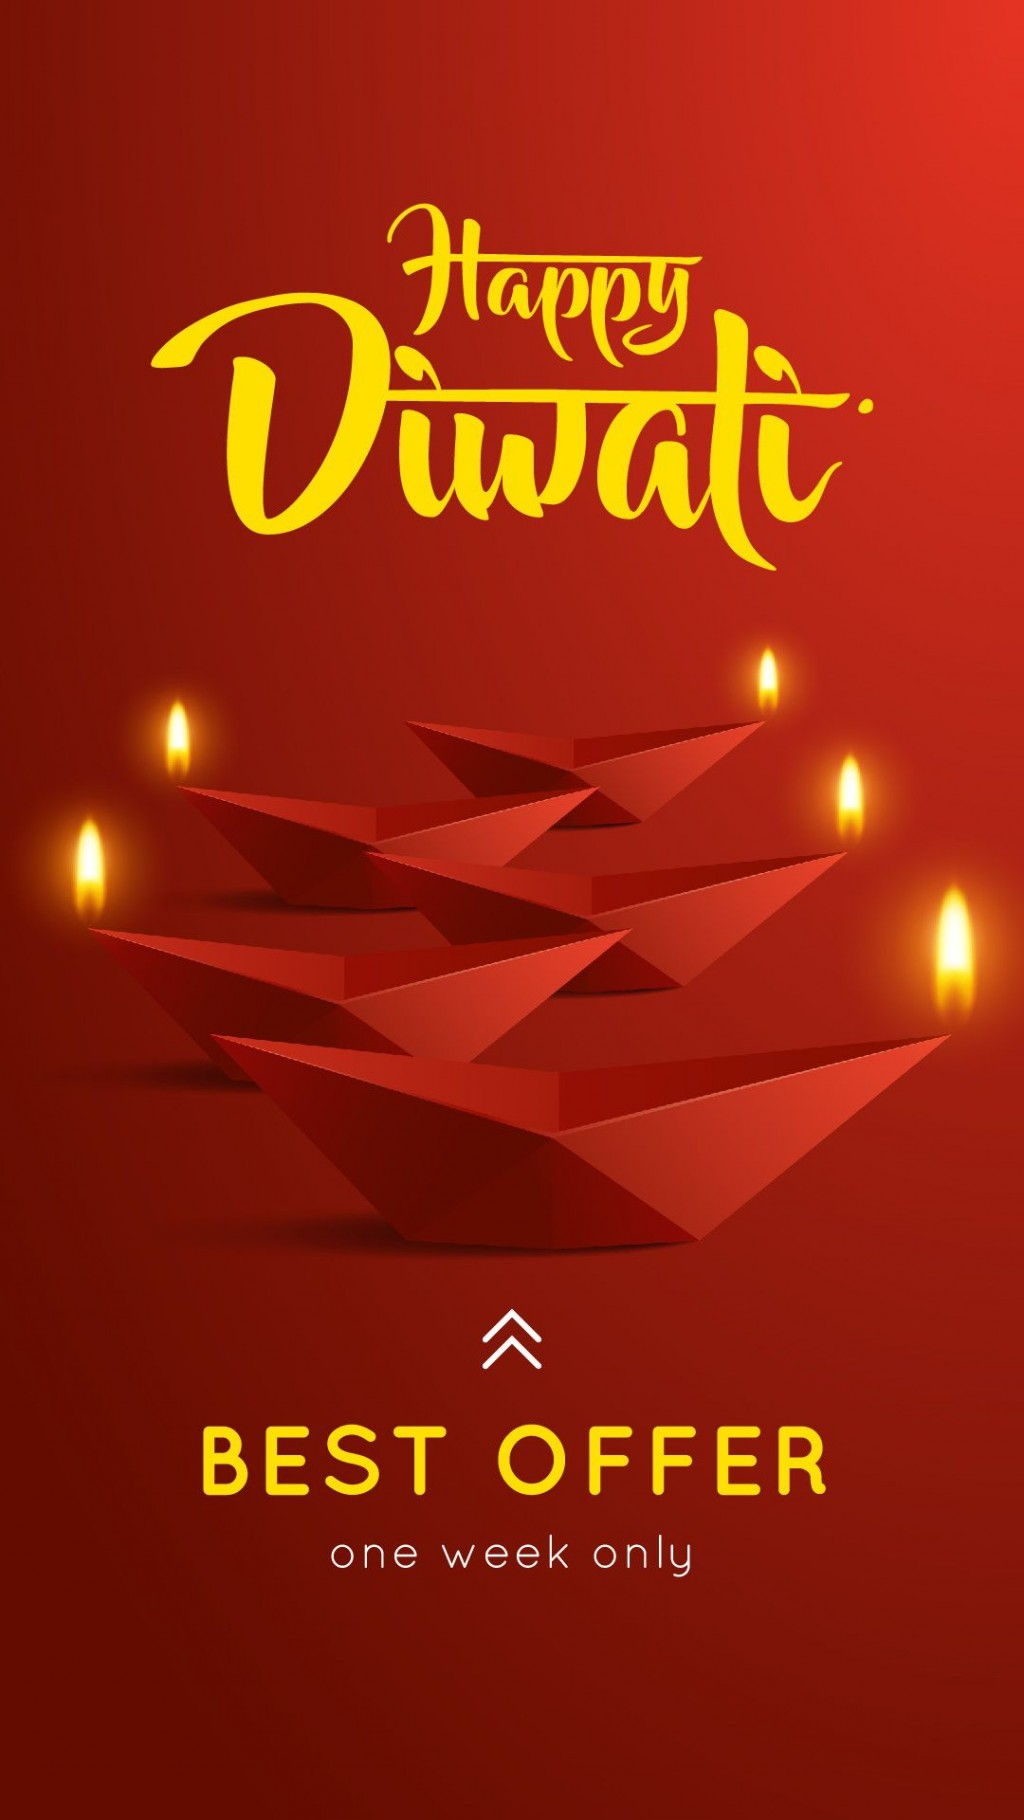 008 Archaicawful Diwali Party Invite Template Free High Resolution Large